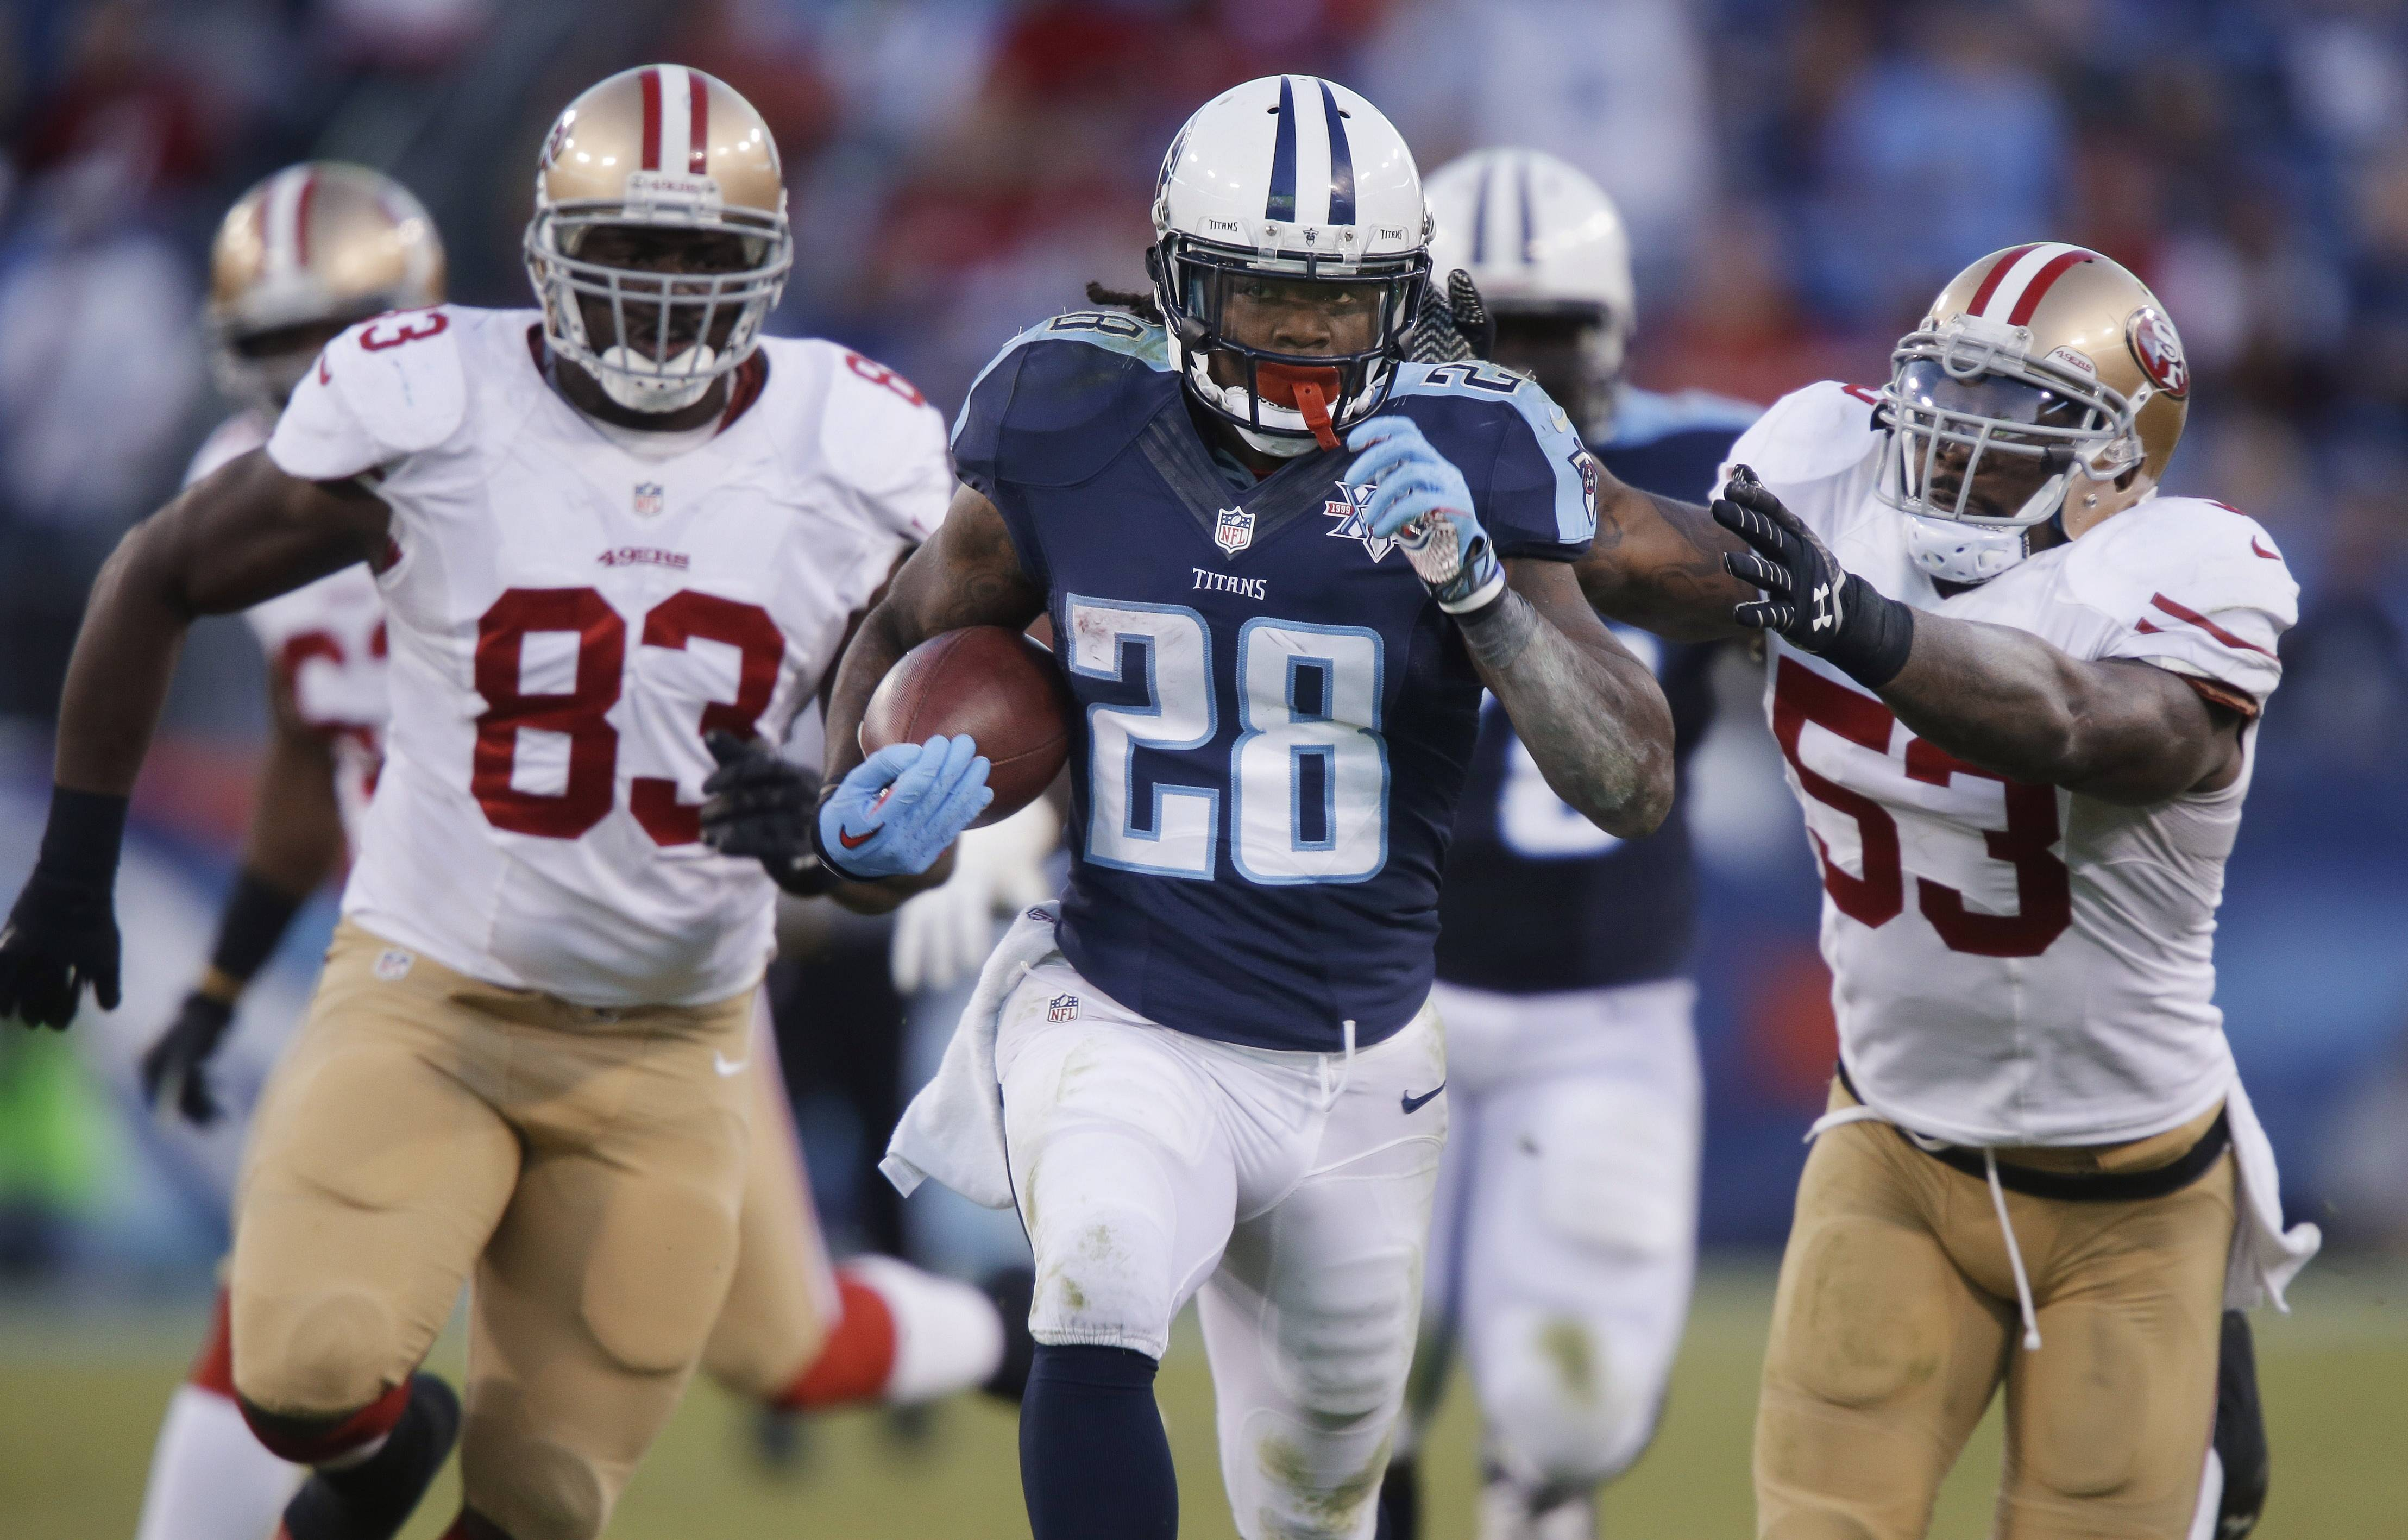 FILE - In this Oct. 20, 2013, file photo, Tennessee Titans running back Chris Johnson (28) runs ahead of San Francisco 49ers defenders Demarcus Dobbs (83) and NaVorro Bowman (53) on a touchdown reception in an NFL football game in Nashville, Tenn.  The New York Jets signed the former Titans running back Wednesday, April 16, a little over a week after he was officially released by Tennessee on April 7.